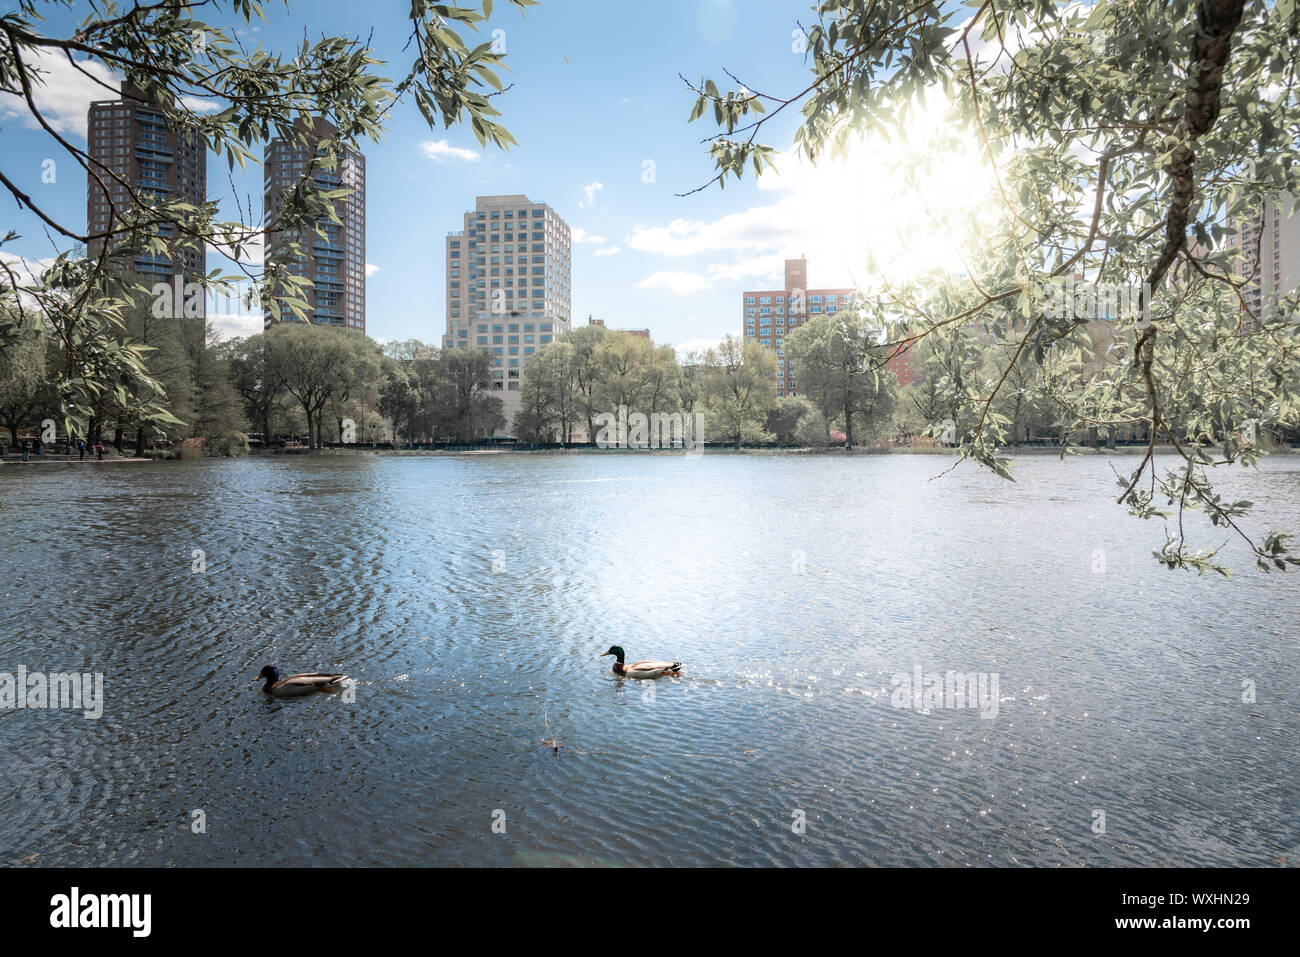 A shot of Central Park during a beautiful sunny day, with buildings reflecting into the water of a lake. New York City, United States Stock Photo